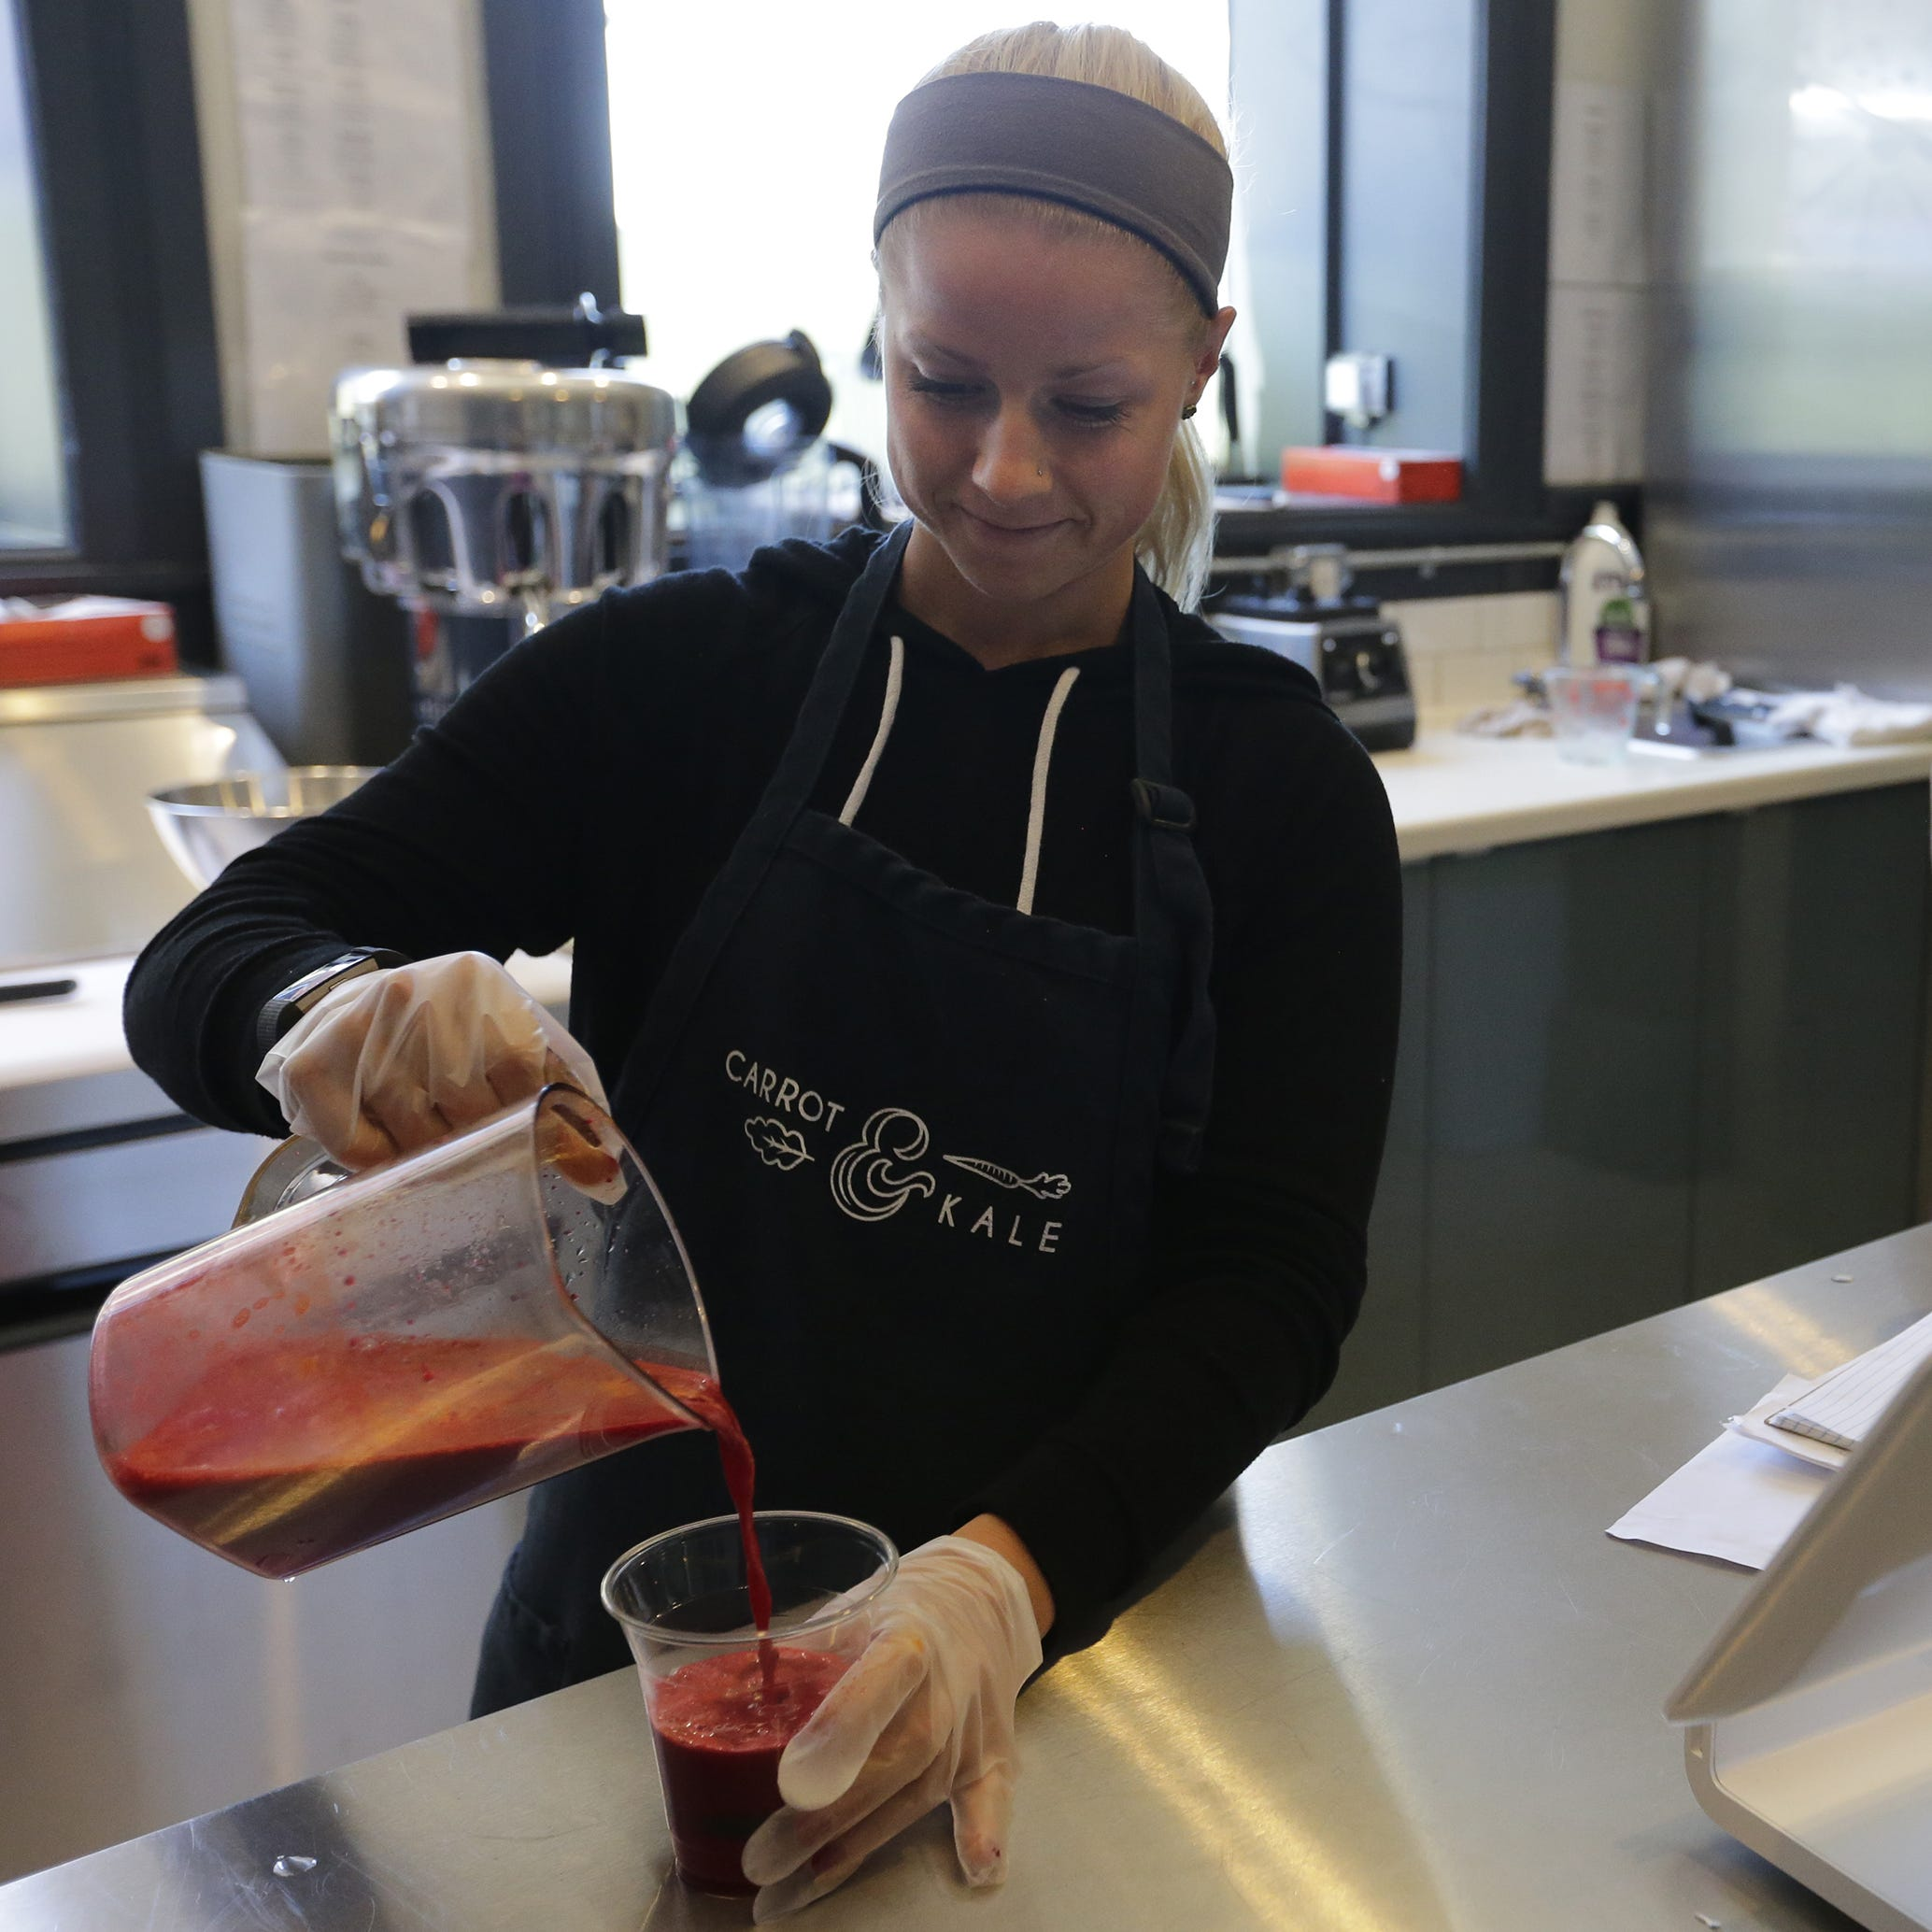 Streetwise: New juice and smoothie bar downtown provides healthy eating options in Oshkosh